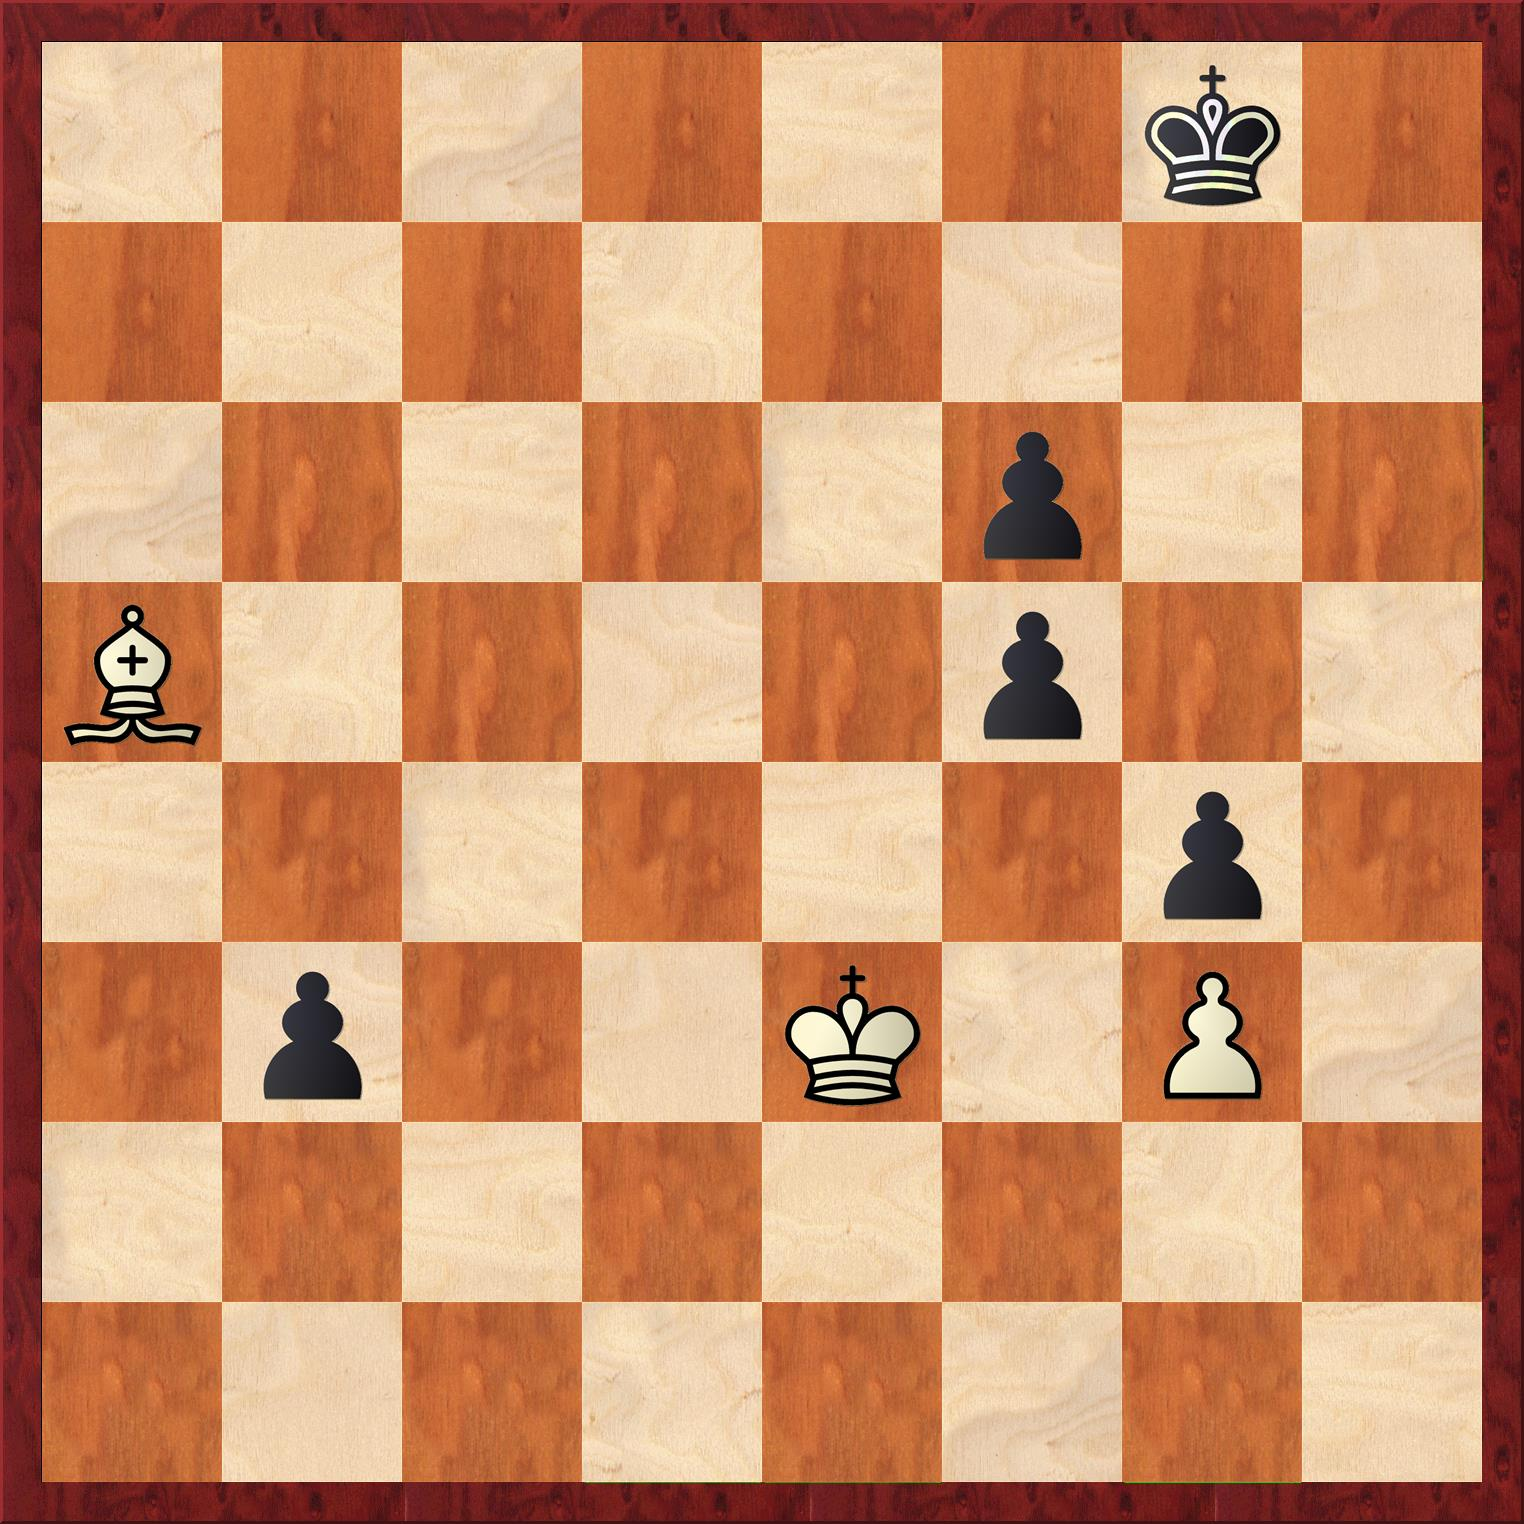 In Nybäck-Matthews, white was in time pressure and apparently attempted to play 47.Kf4 which would lose immediately to 47…b2. After realizing this, he placed the piece back on e3, then played 47.Bc3. Matthews protested, but the arbiter upheld the ruling that Nyback was